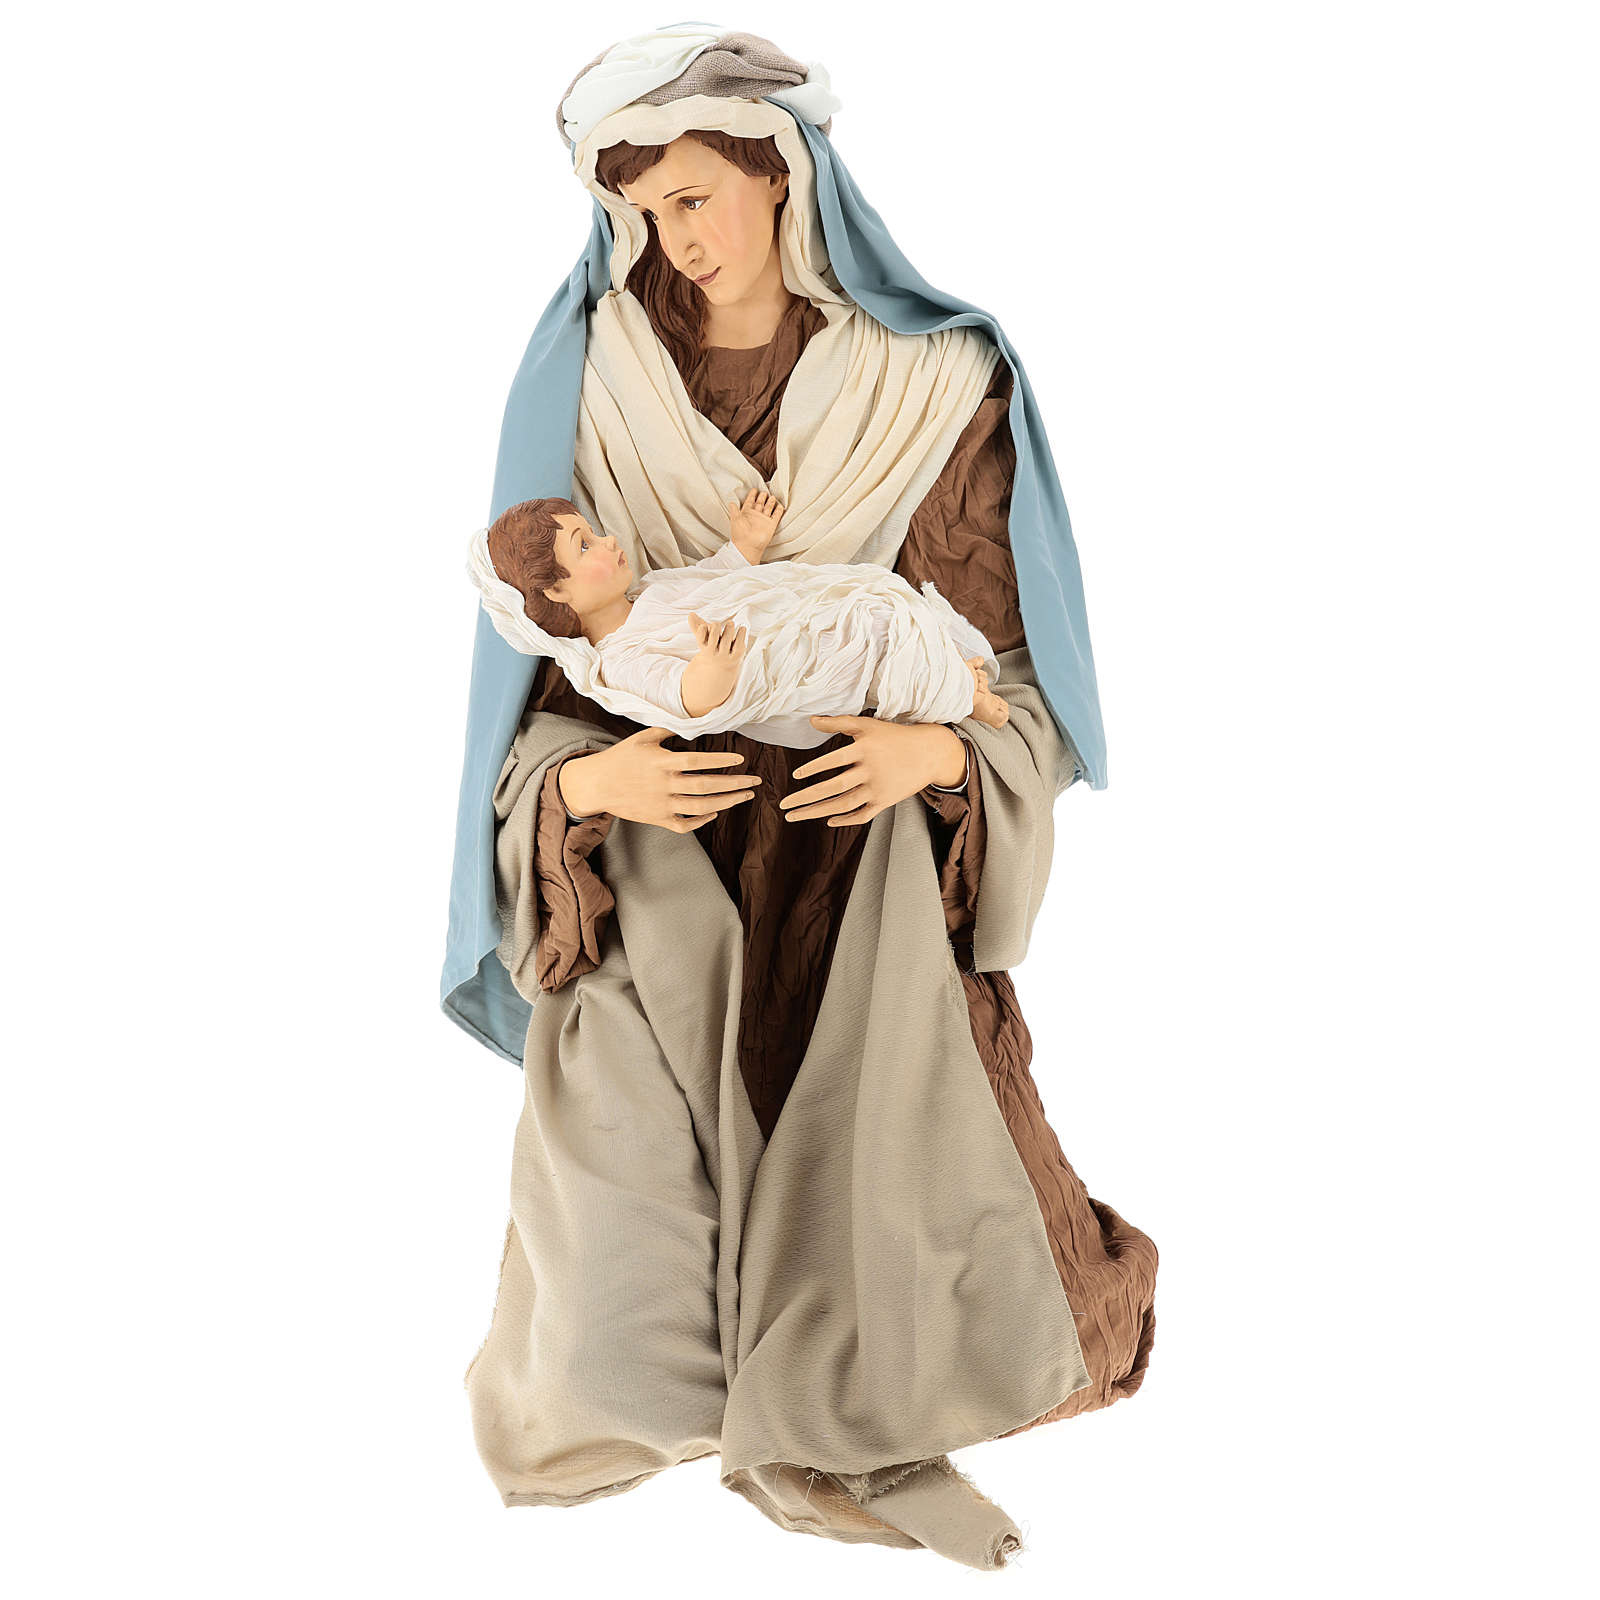 Lifesize Nativity 170 cm in resin and fabric in Shabby Chic style 3